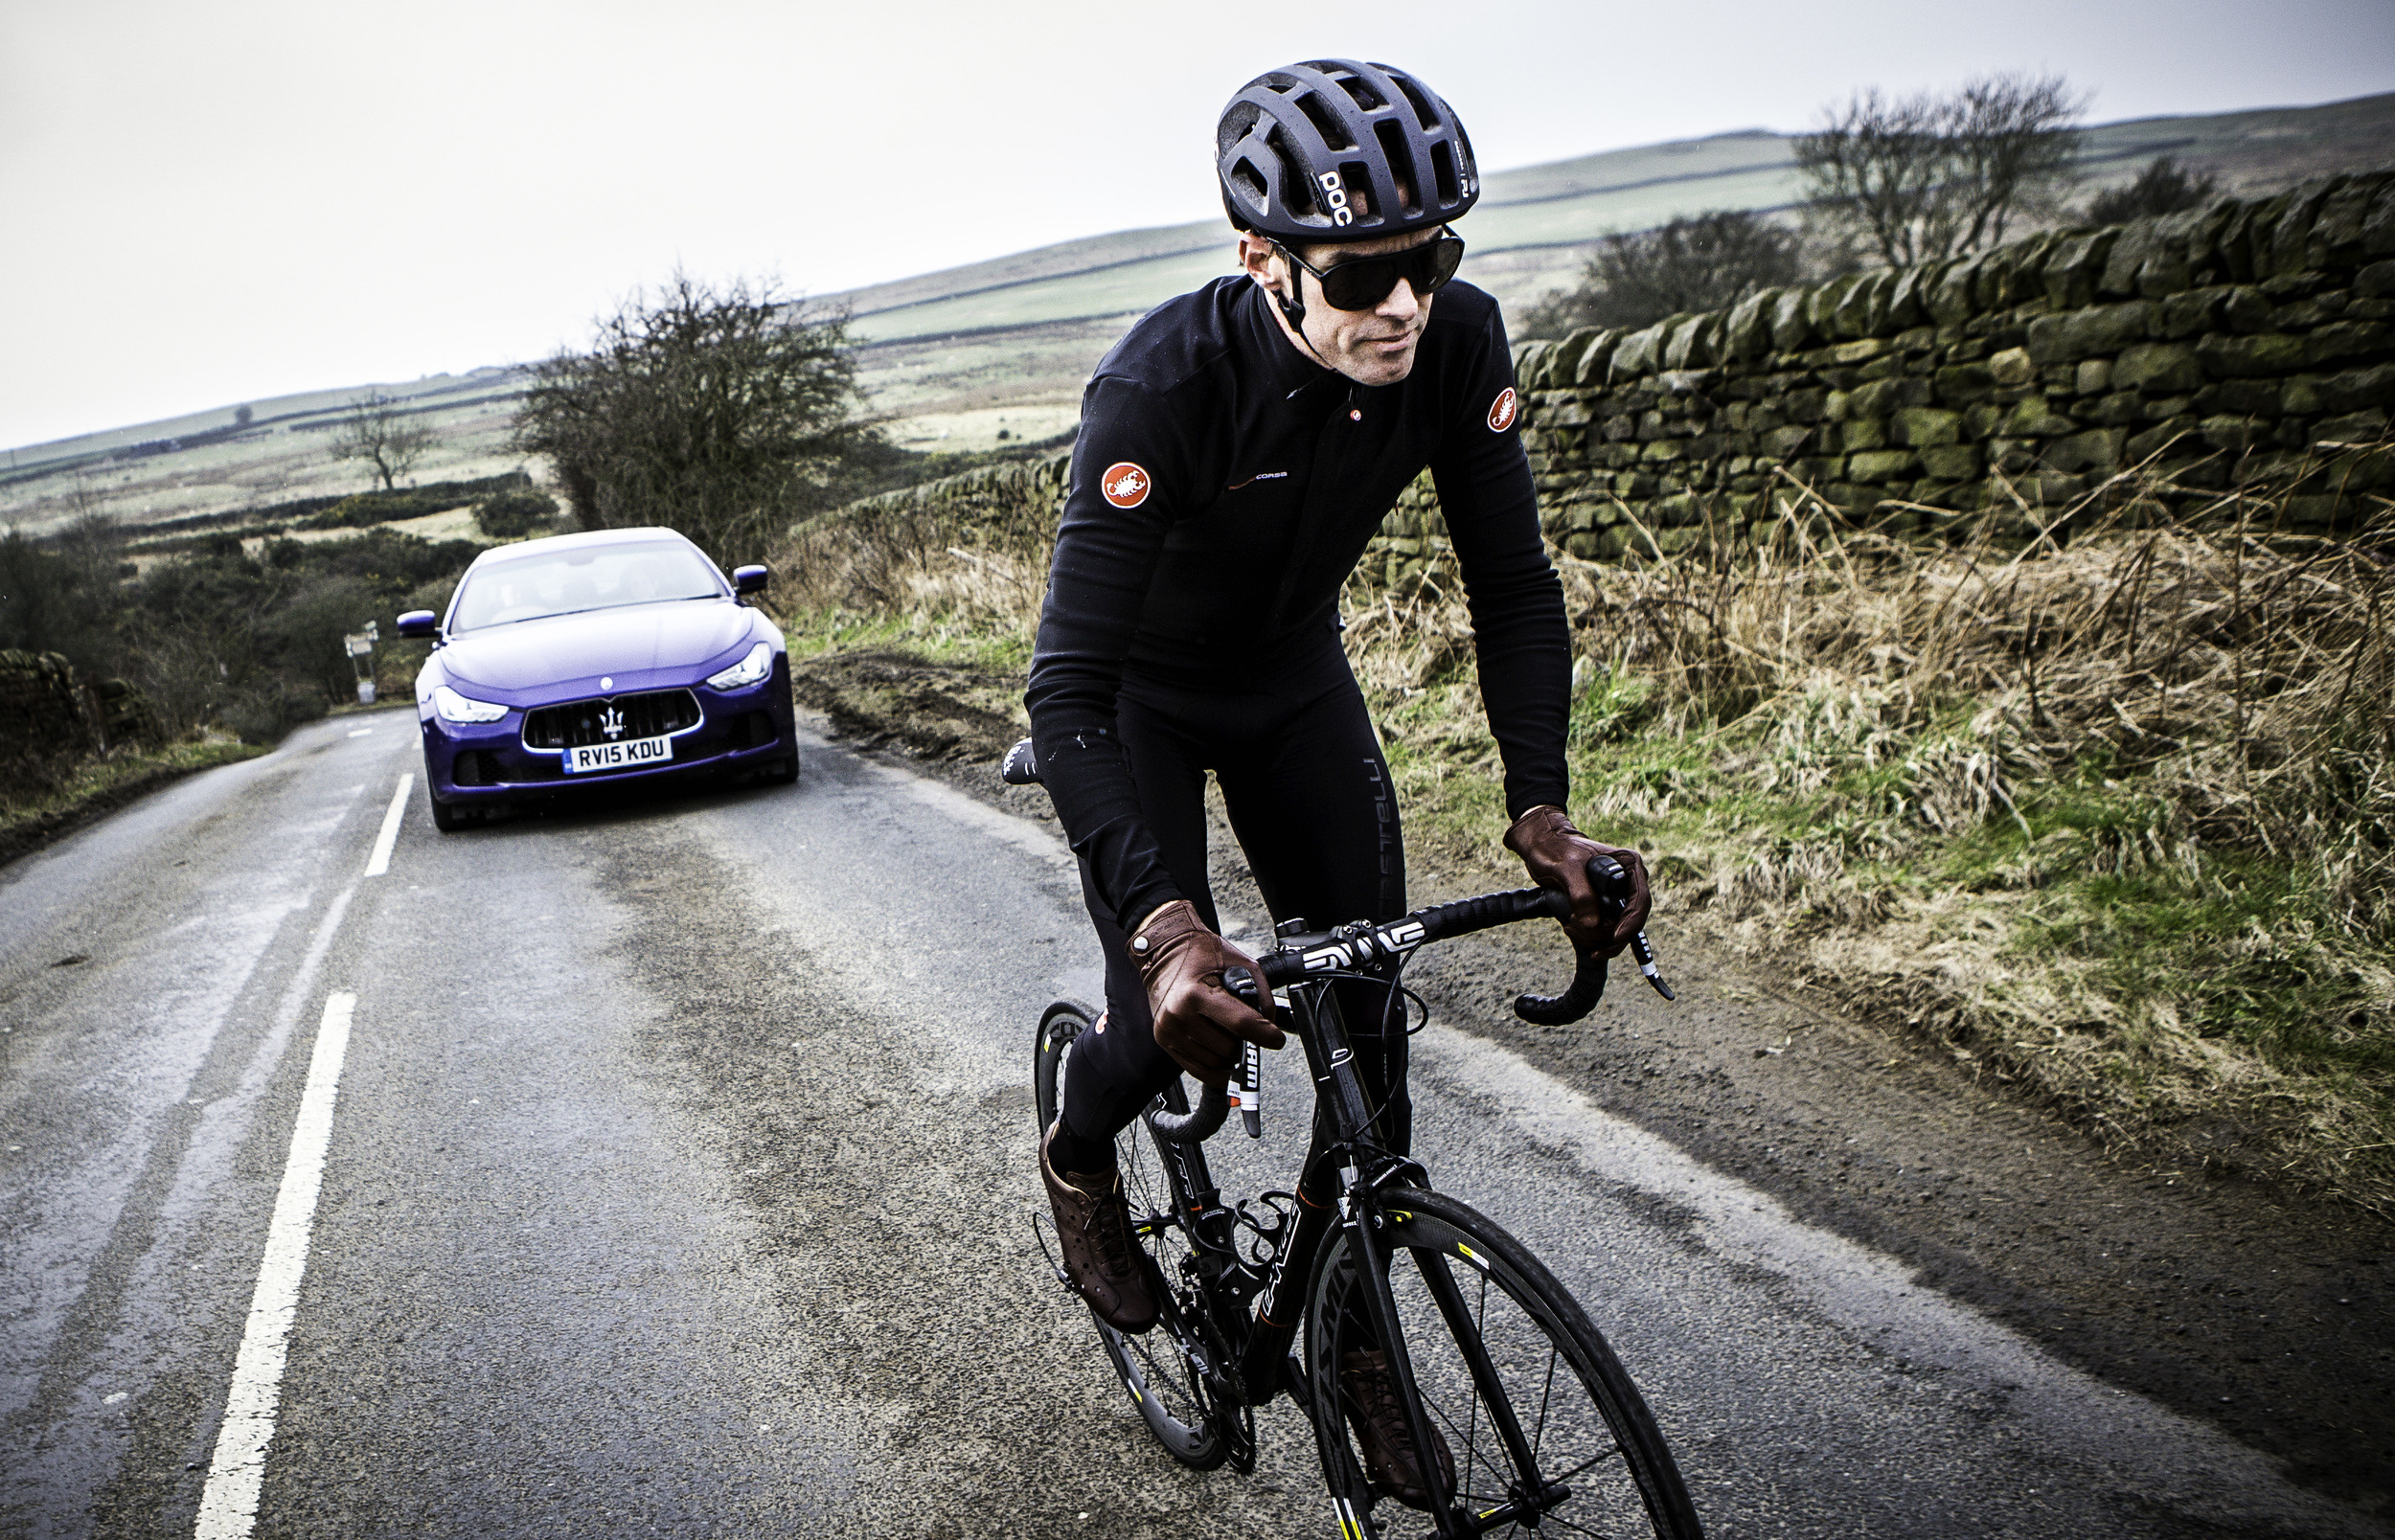 David Millar will be appearing at the Rouleur Classic Event from 19th-21st November